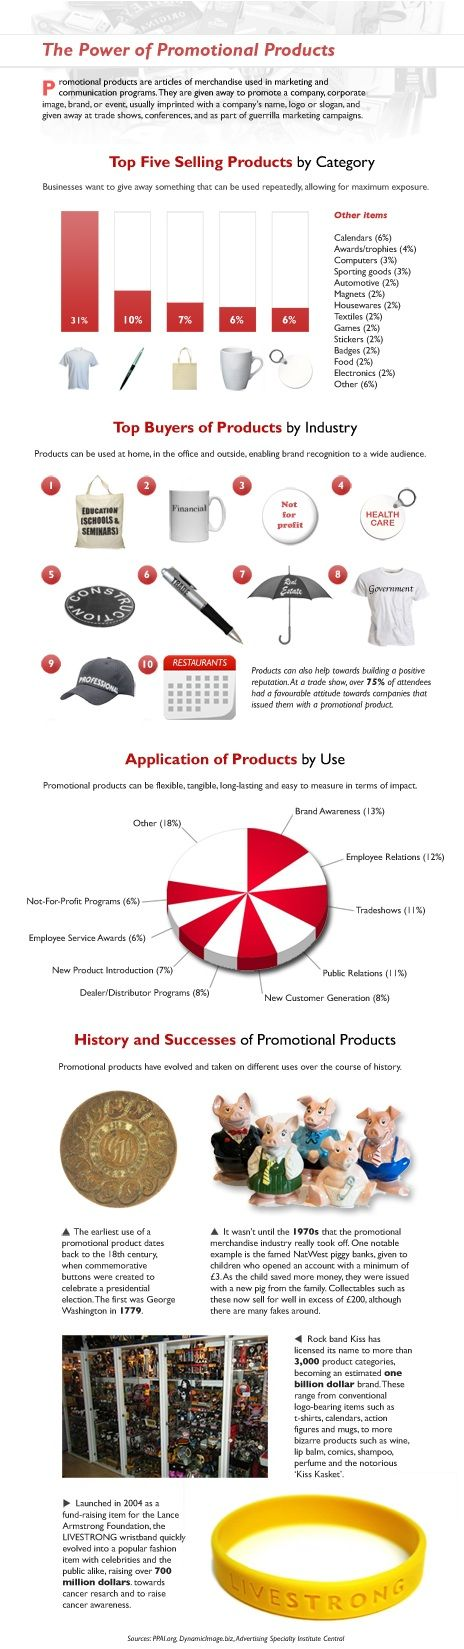 The-Power-of-Promotional-Products